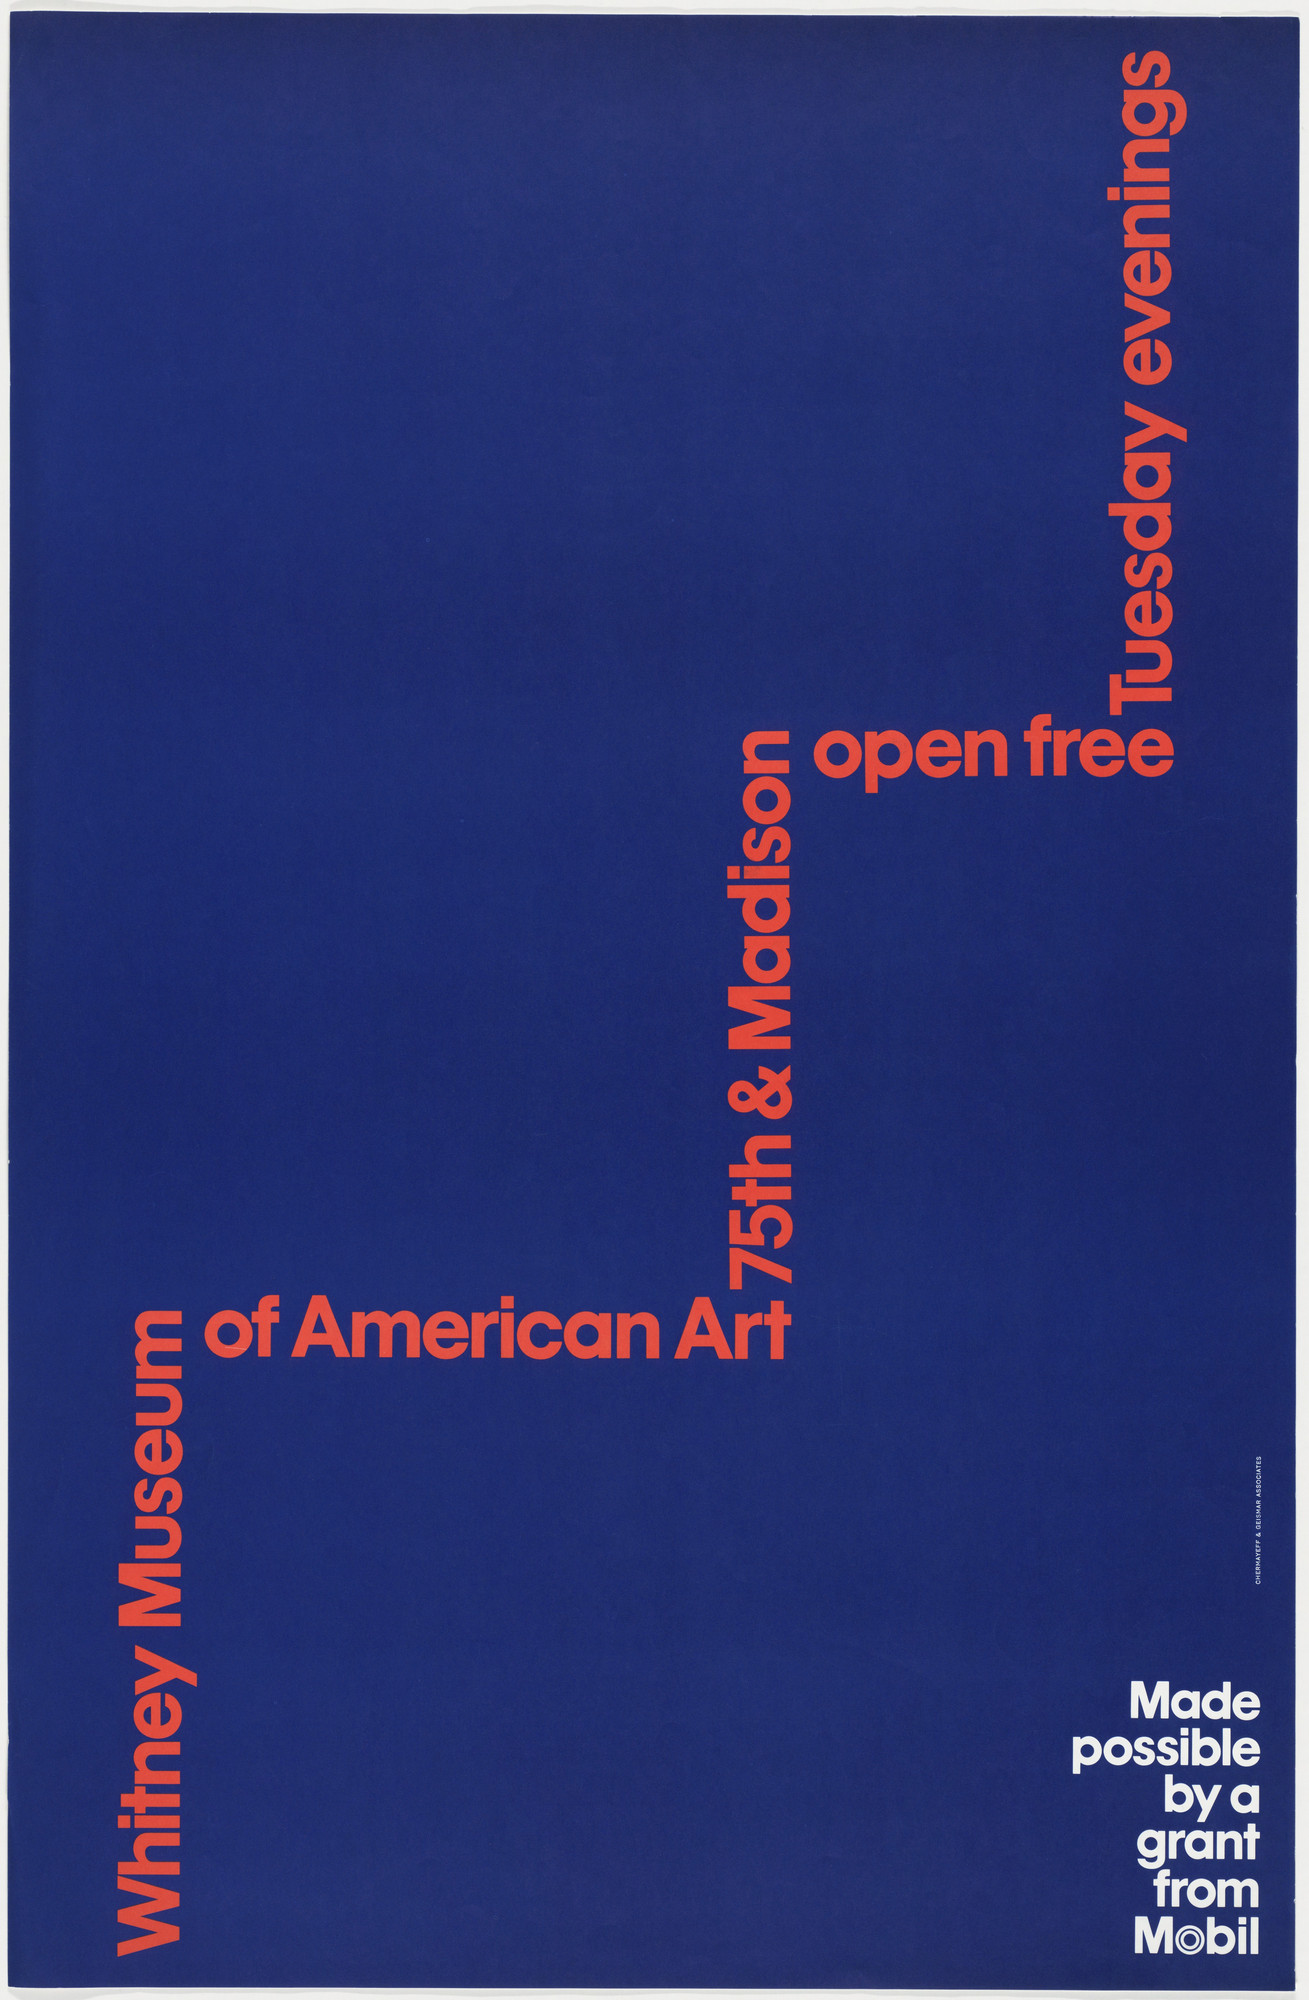 Ivan Chermayeff, Thomas Geismar. Whitney Museum of American Art, 75th & Madison, Open Free Tuesday Evenings. 1977